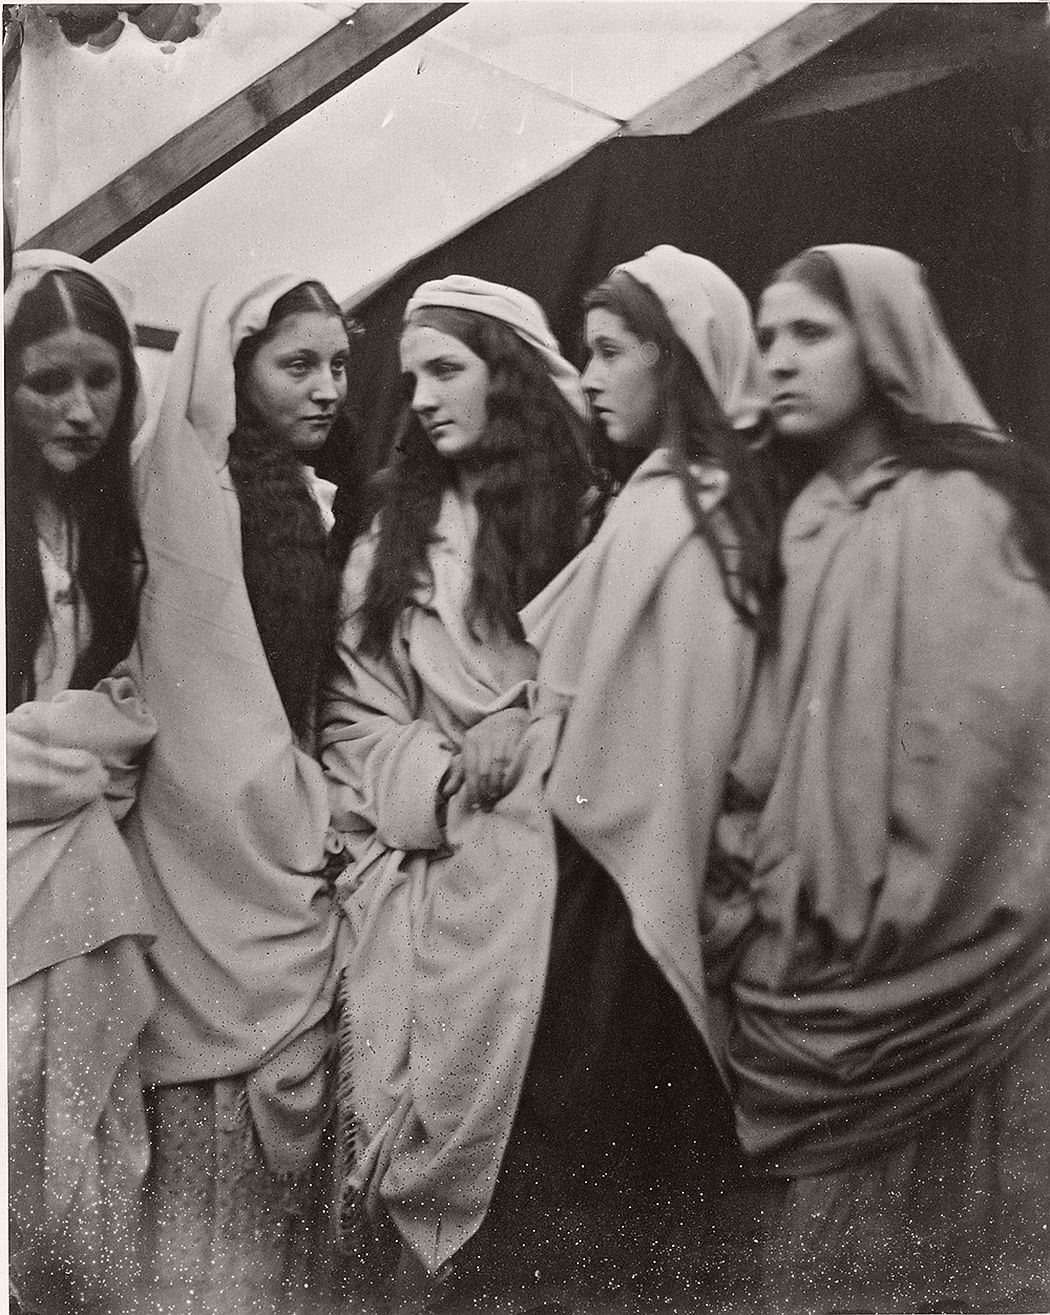 The Five Foolish Virgins, 1864